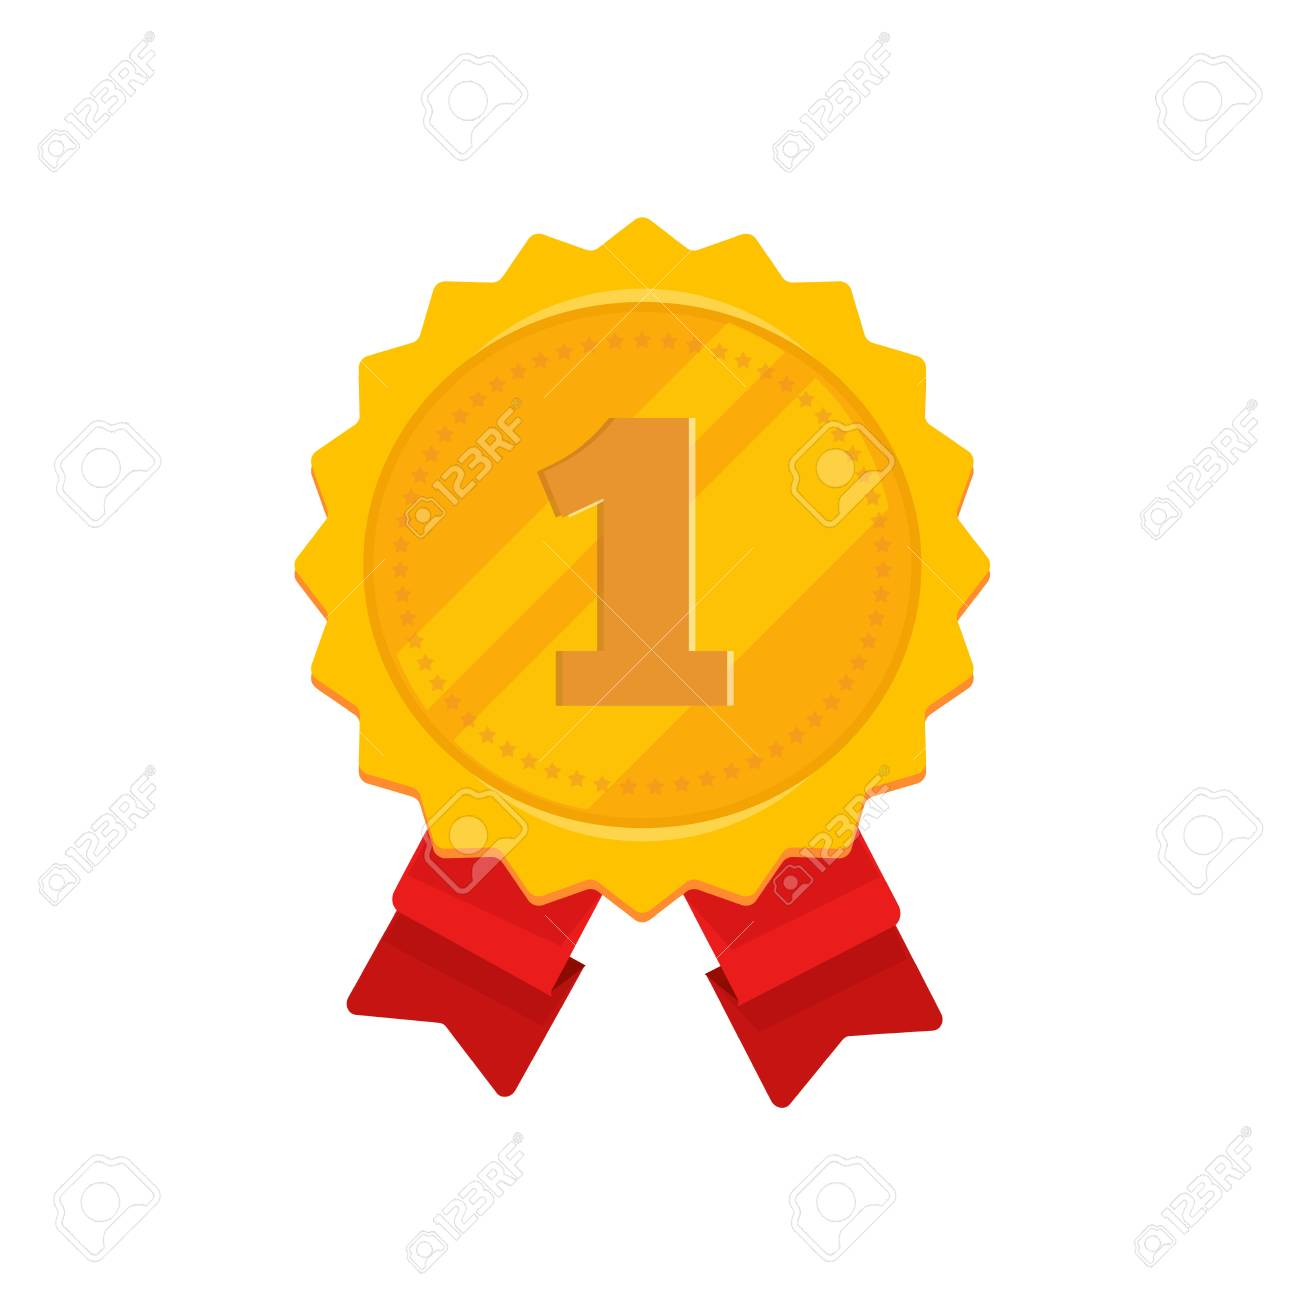 Golden Medal With 1st Place Vector Illustration Flat Cartoon Royalty Free Cliparts Vectors And Stock Illustration Image 102868880